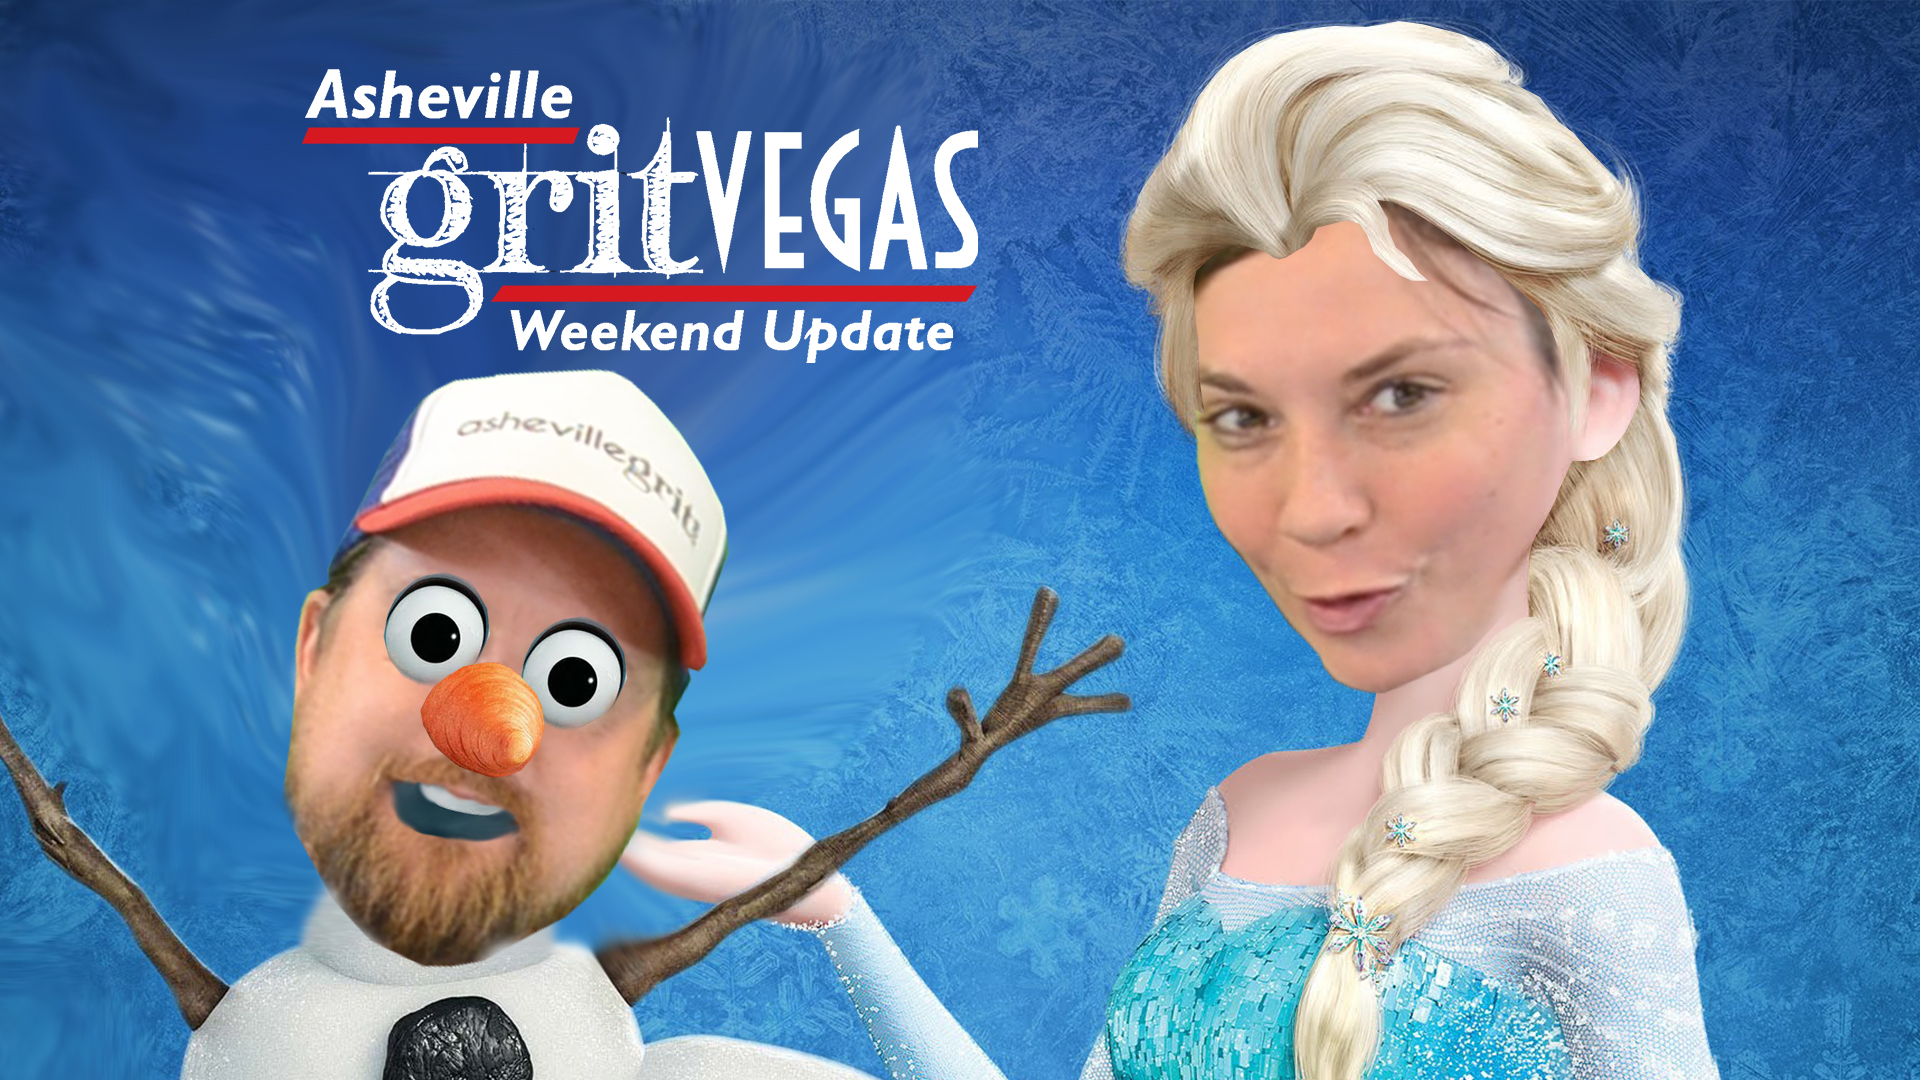 GritVegas Weekend Update January 5-8